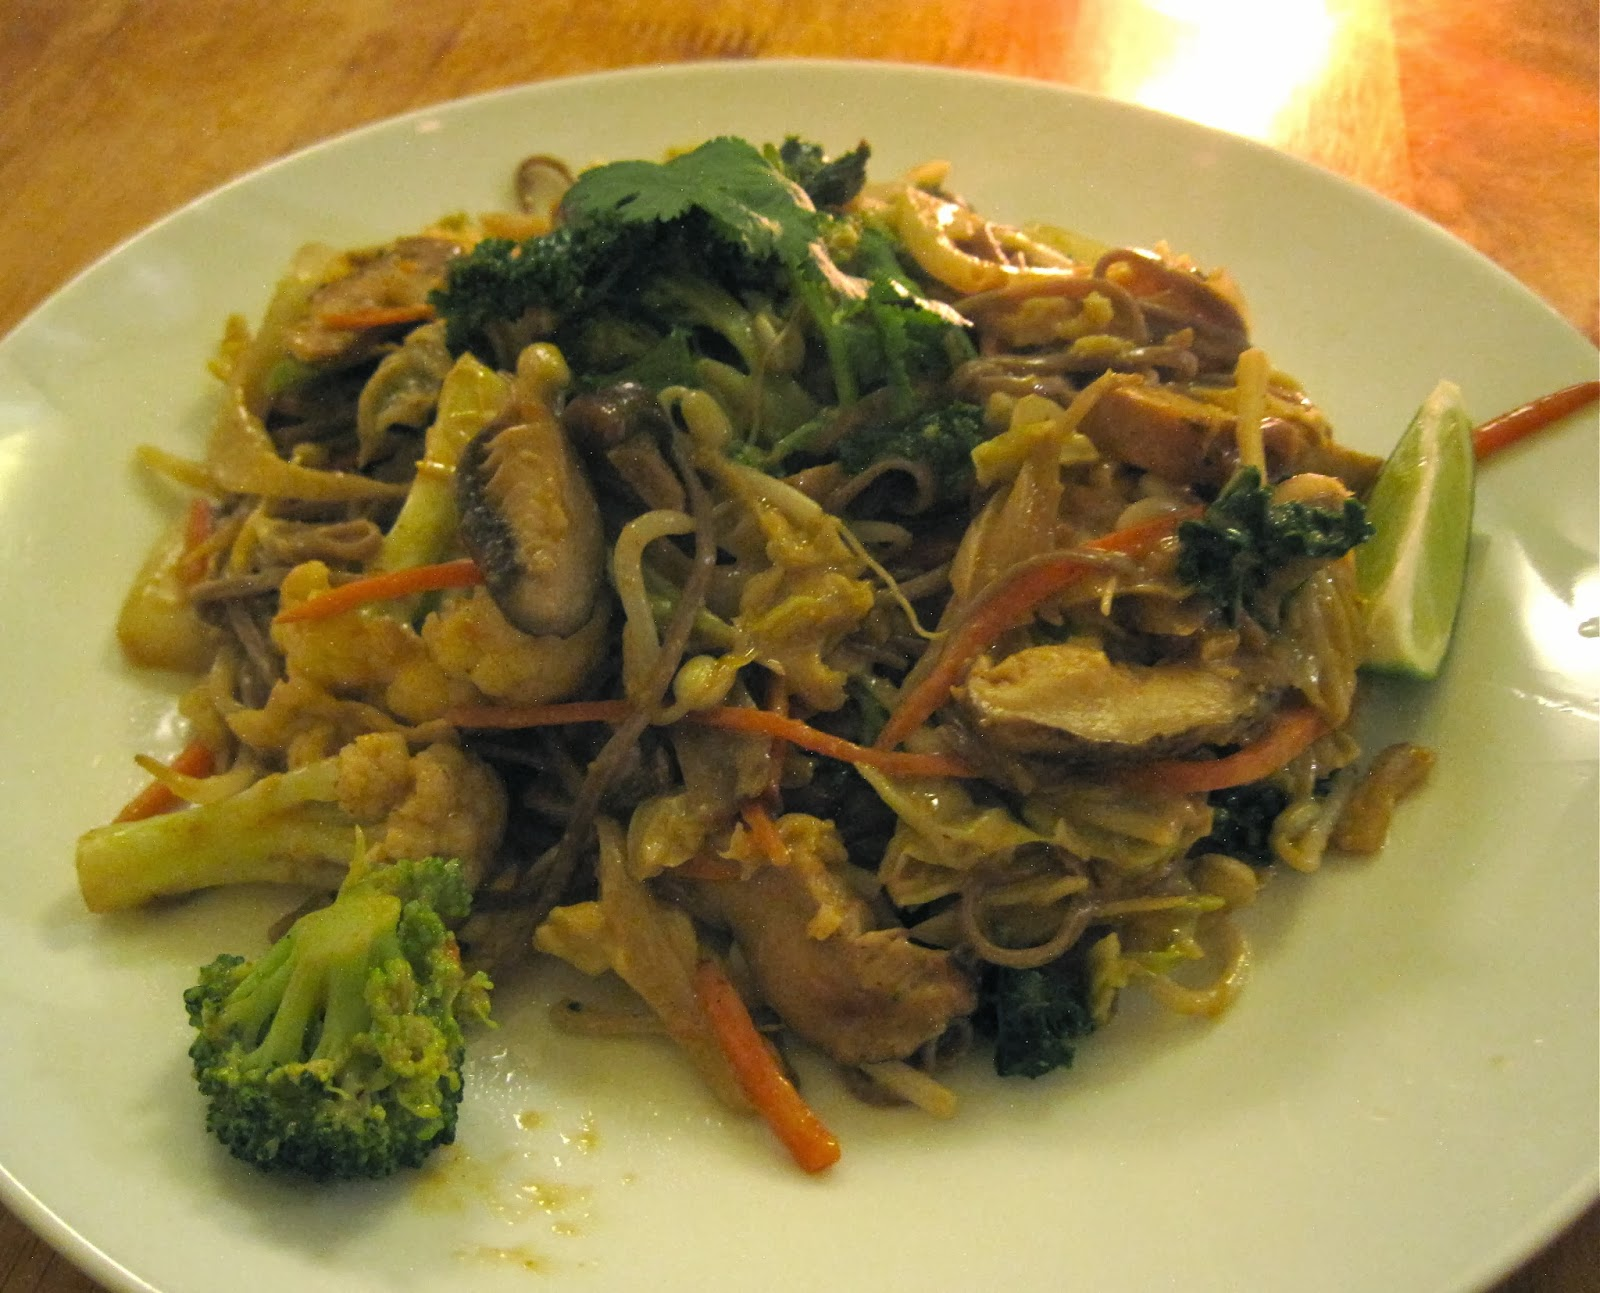 Egg-Free Vegan Pad Thai with Tofu - Souen New York City